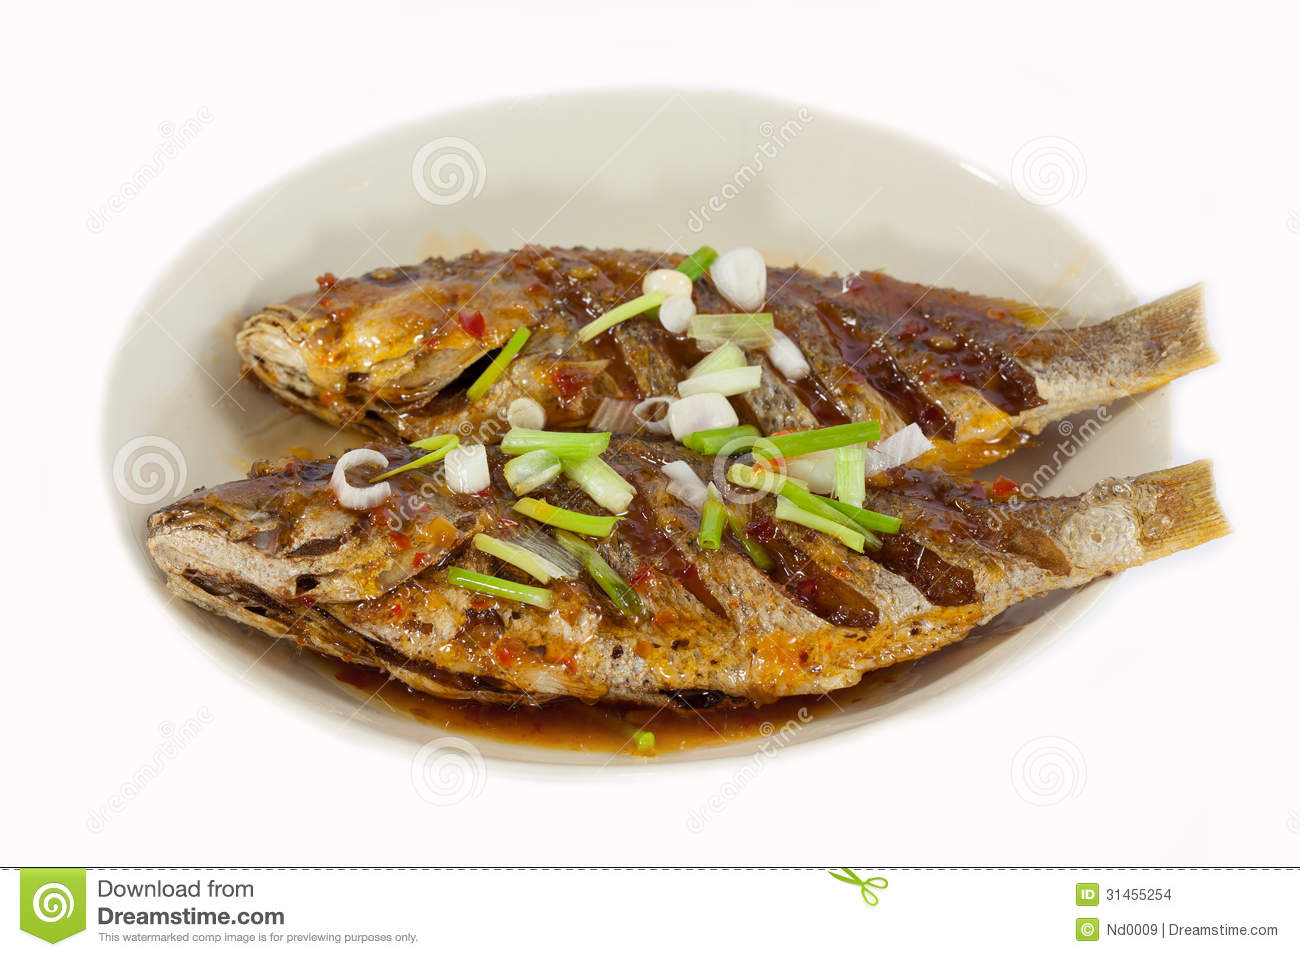 Fried fish on plate isolated on white background stock for Fried fish nutrition